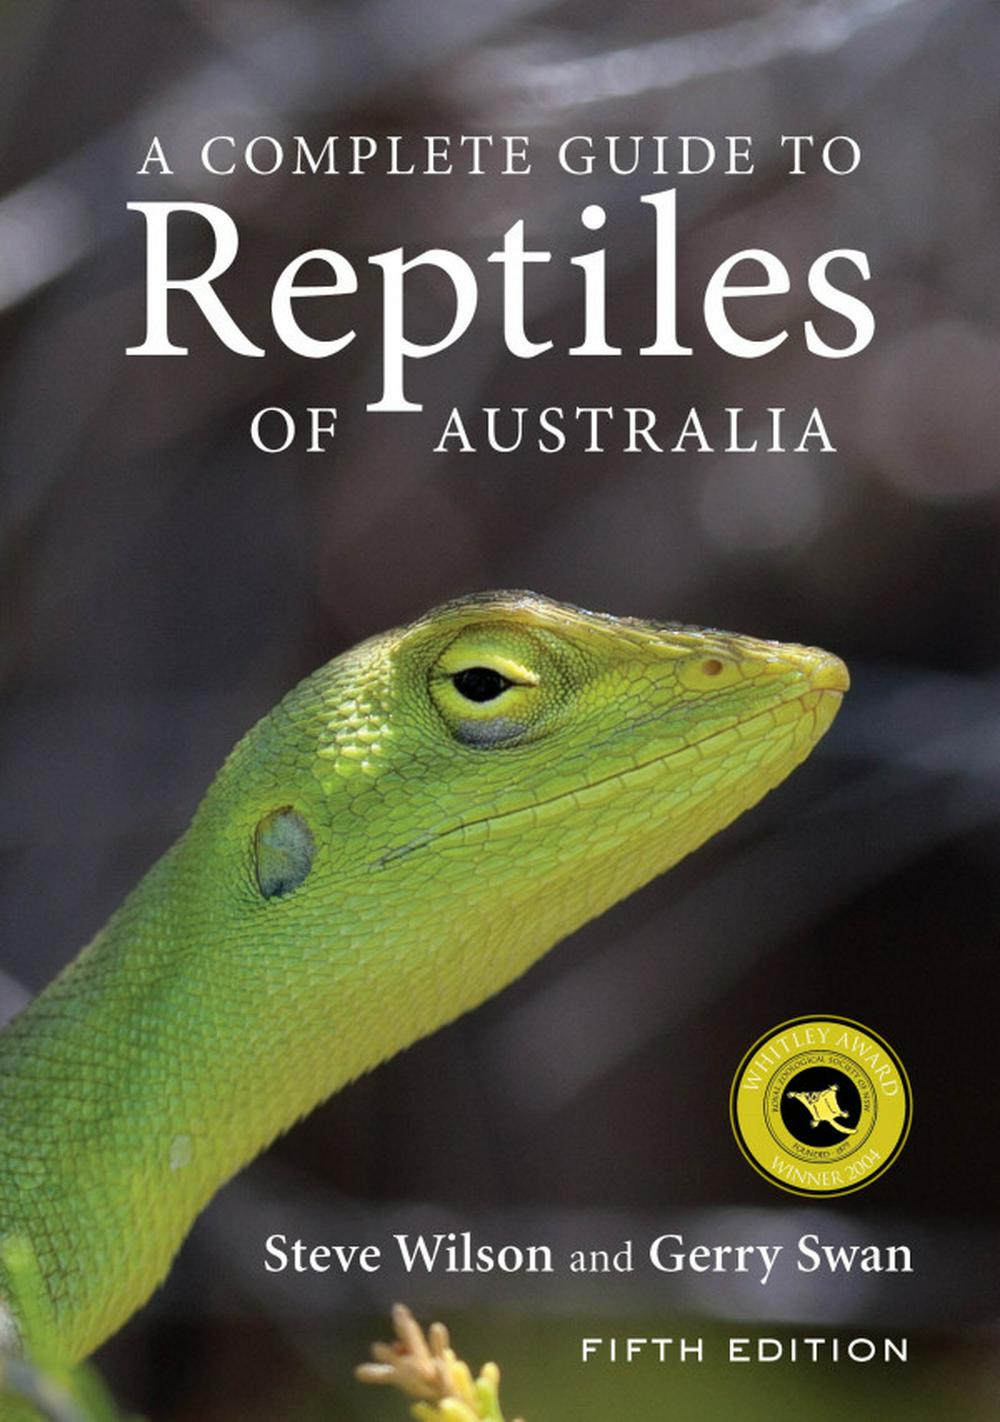 A Complete Guide to Reptiles of AustraliaFifth Edition